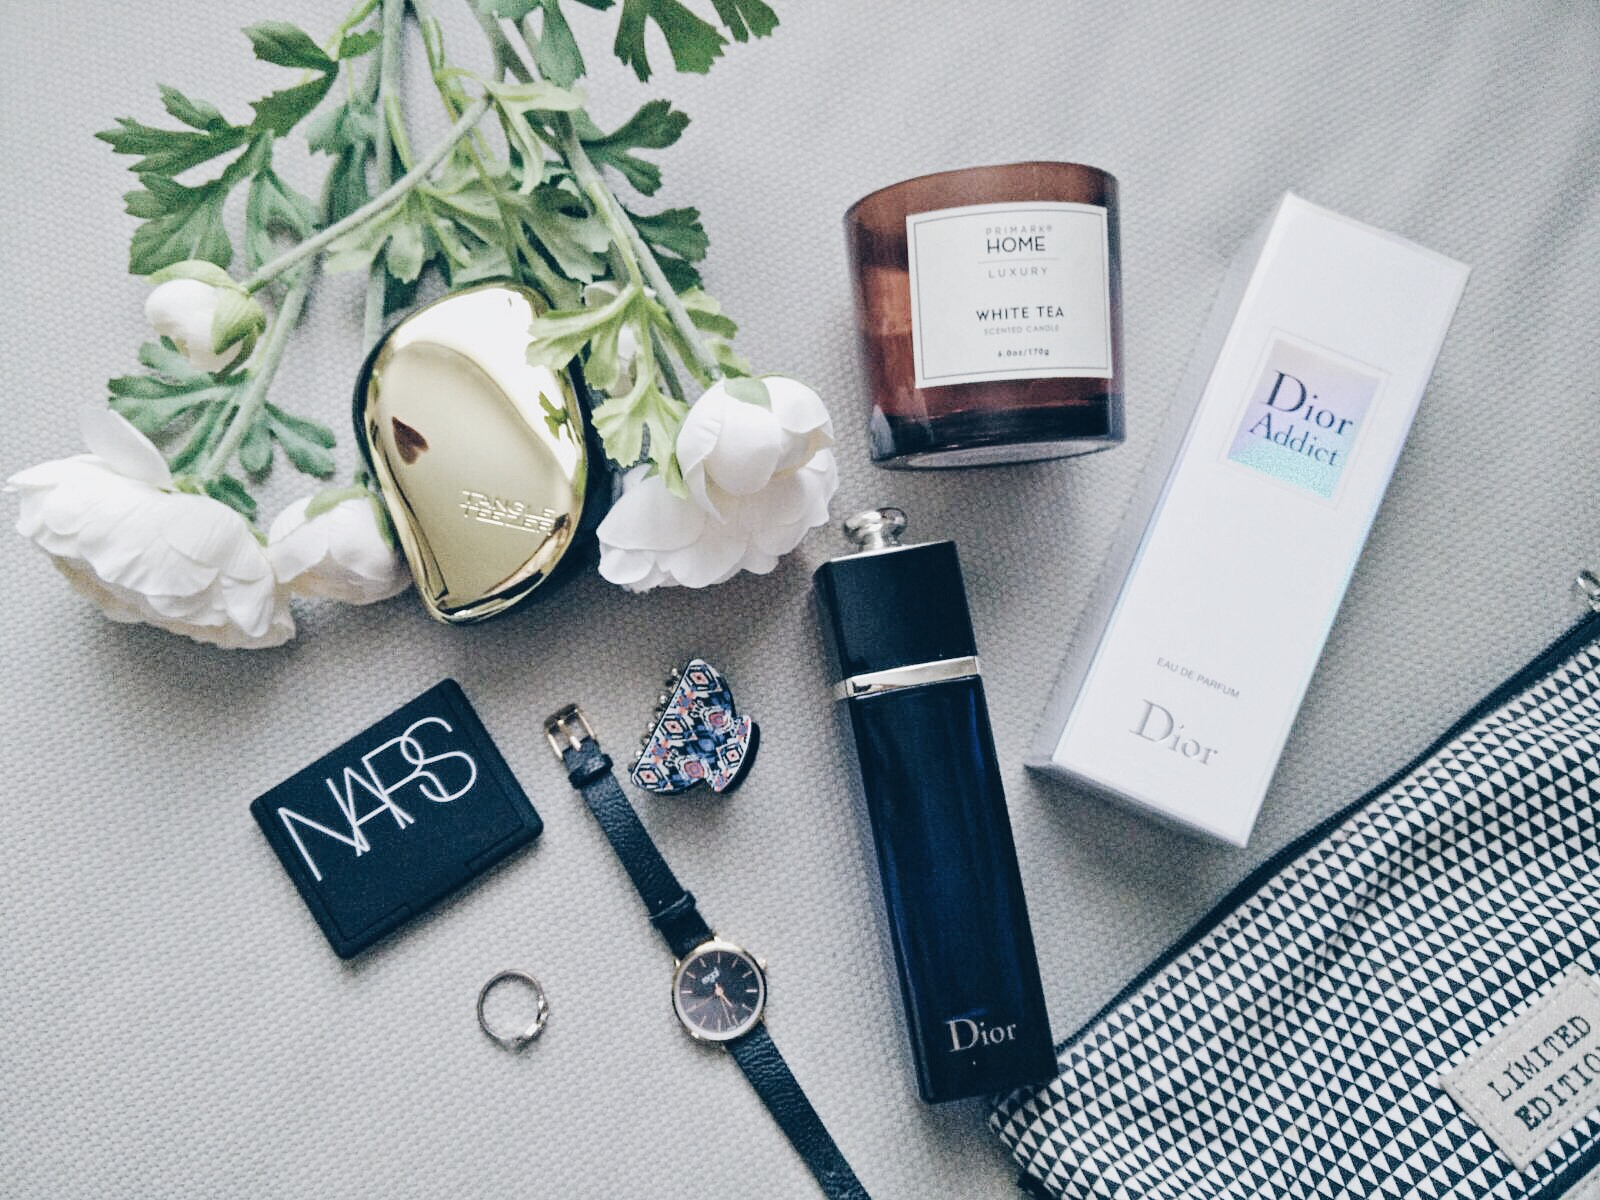 SEPHORA HAUL – Dior, Nars & Tangle Teezer